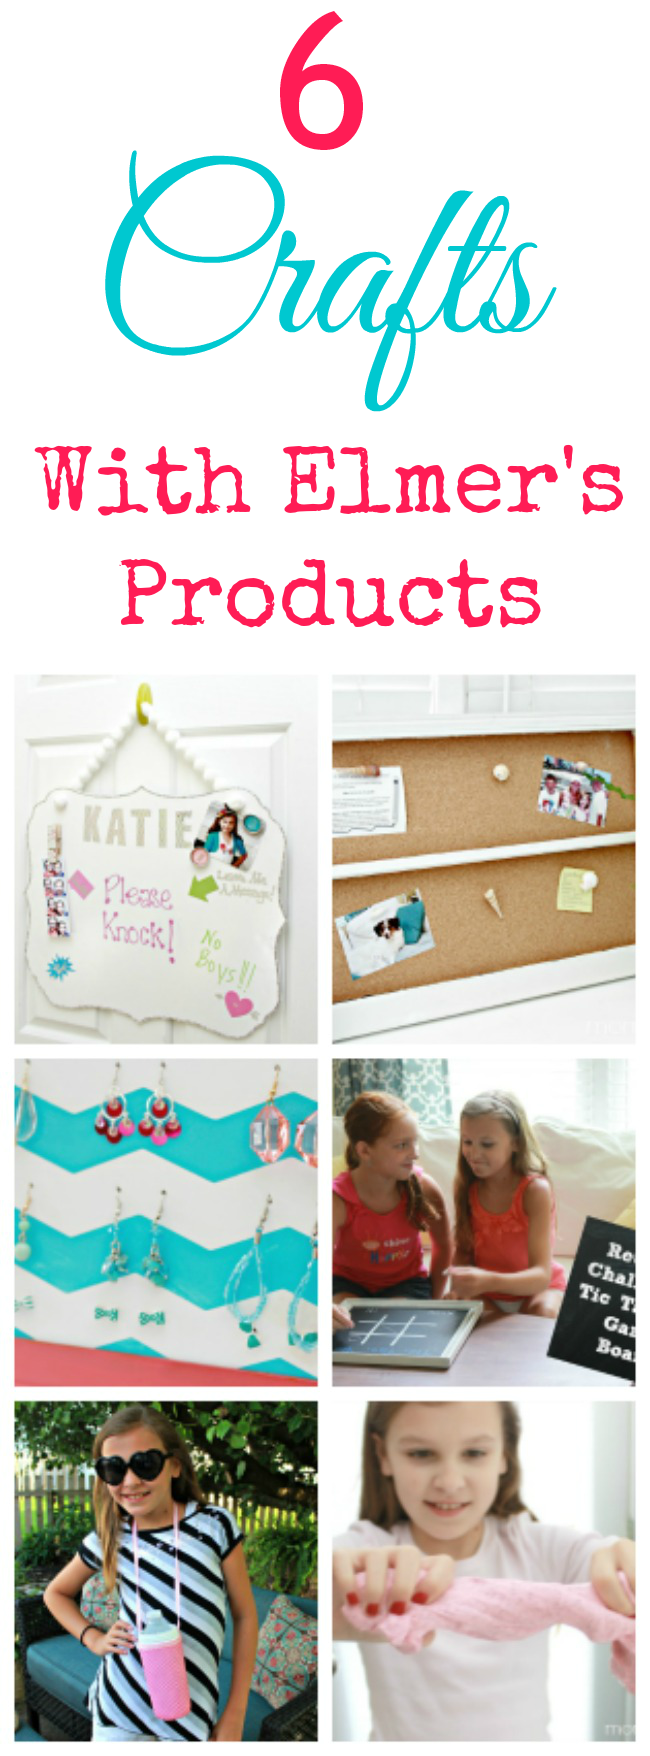 6 Fun Craft Projects Using Elmer's Products